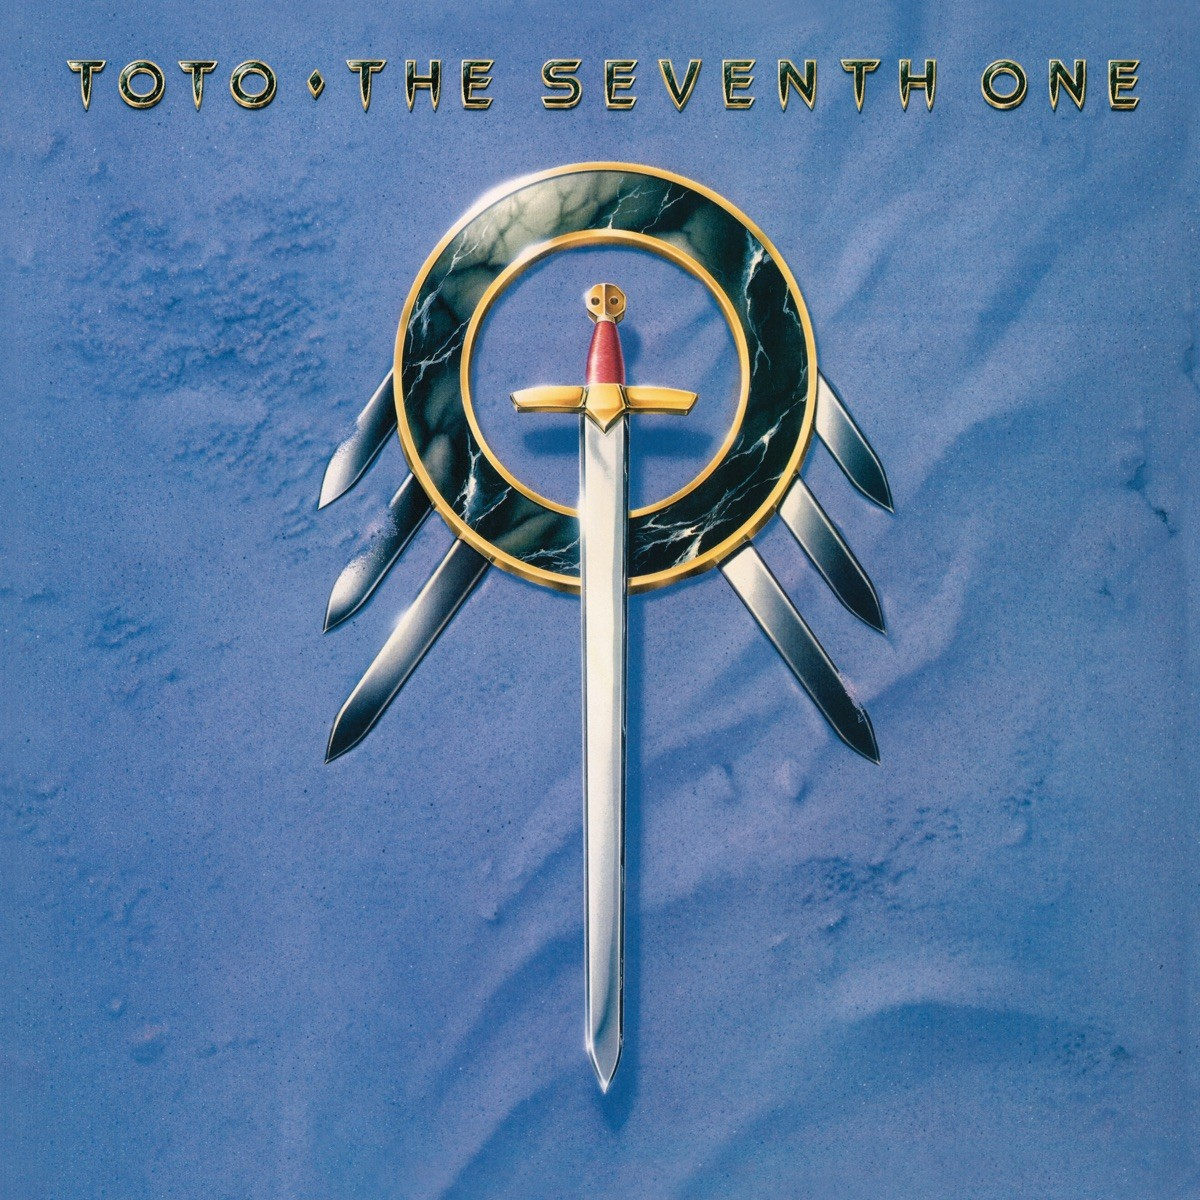 Toto - The Seventh One VINYL - 19075801151